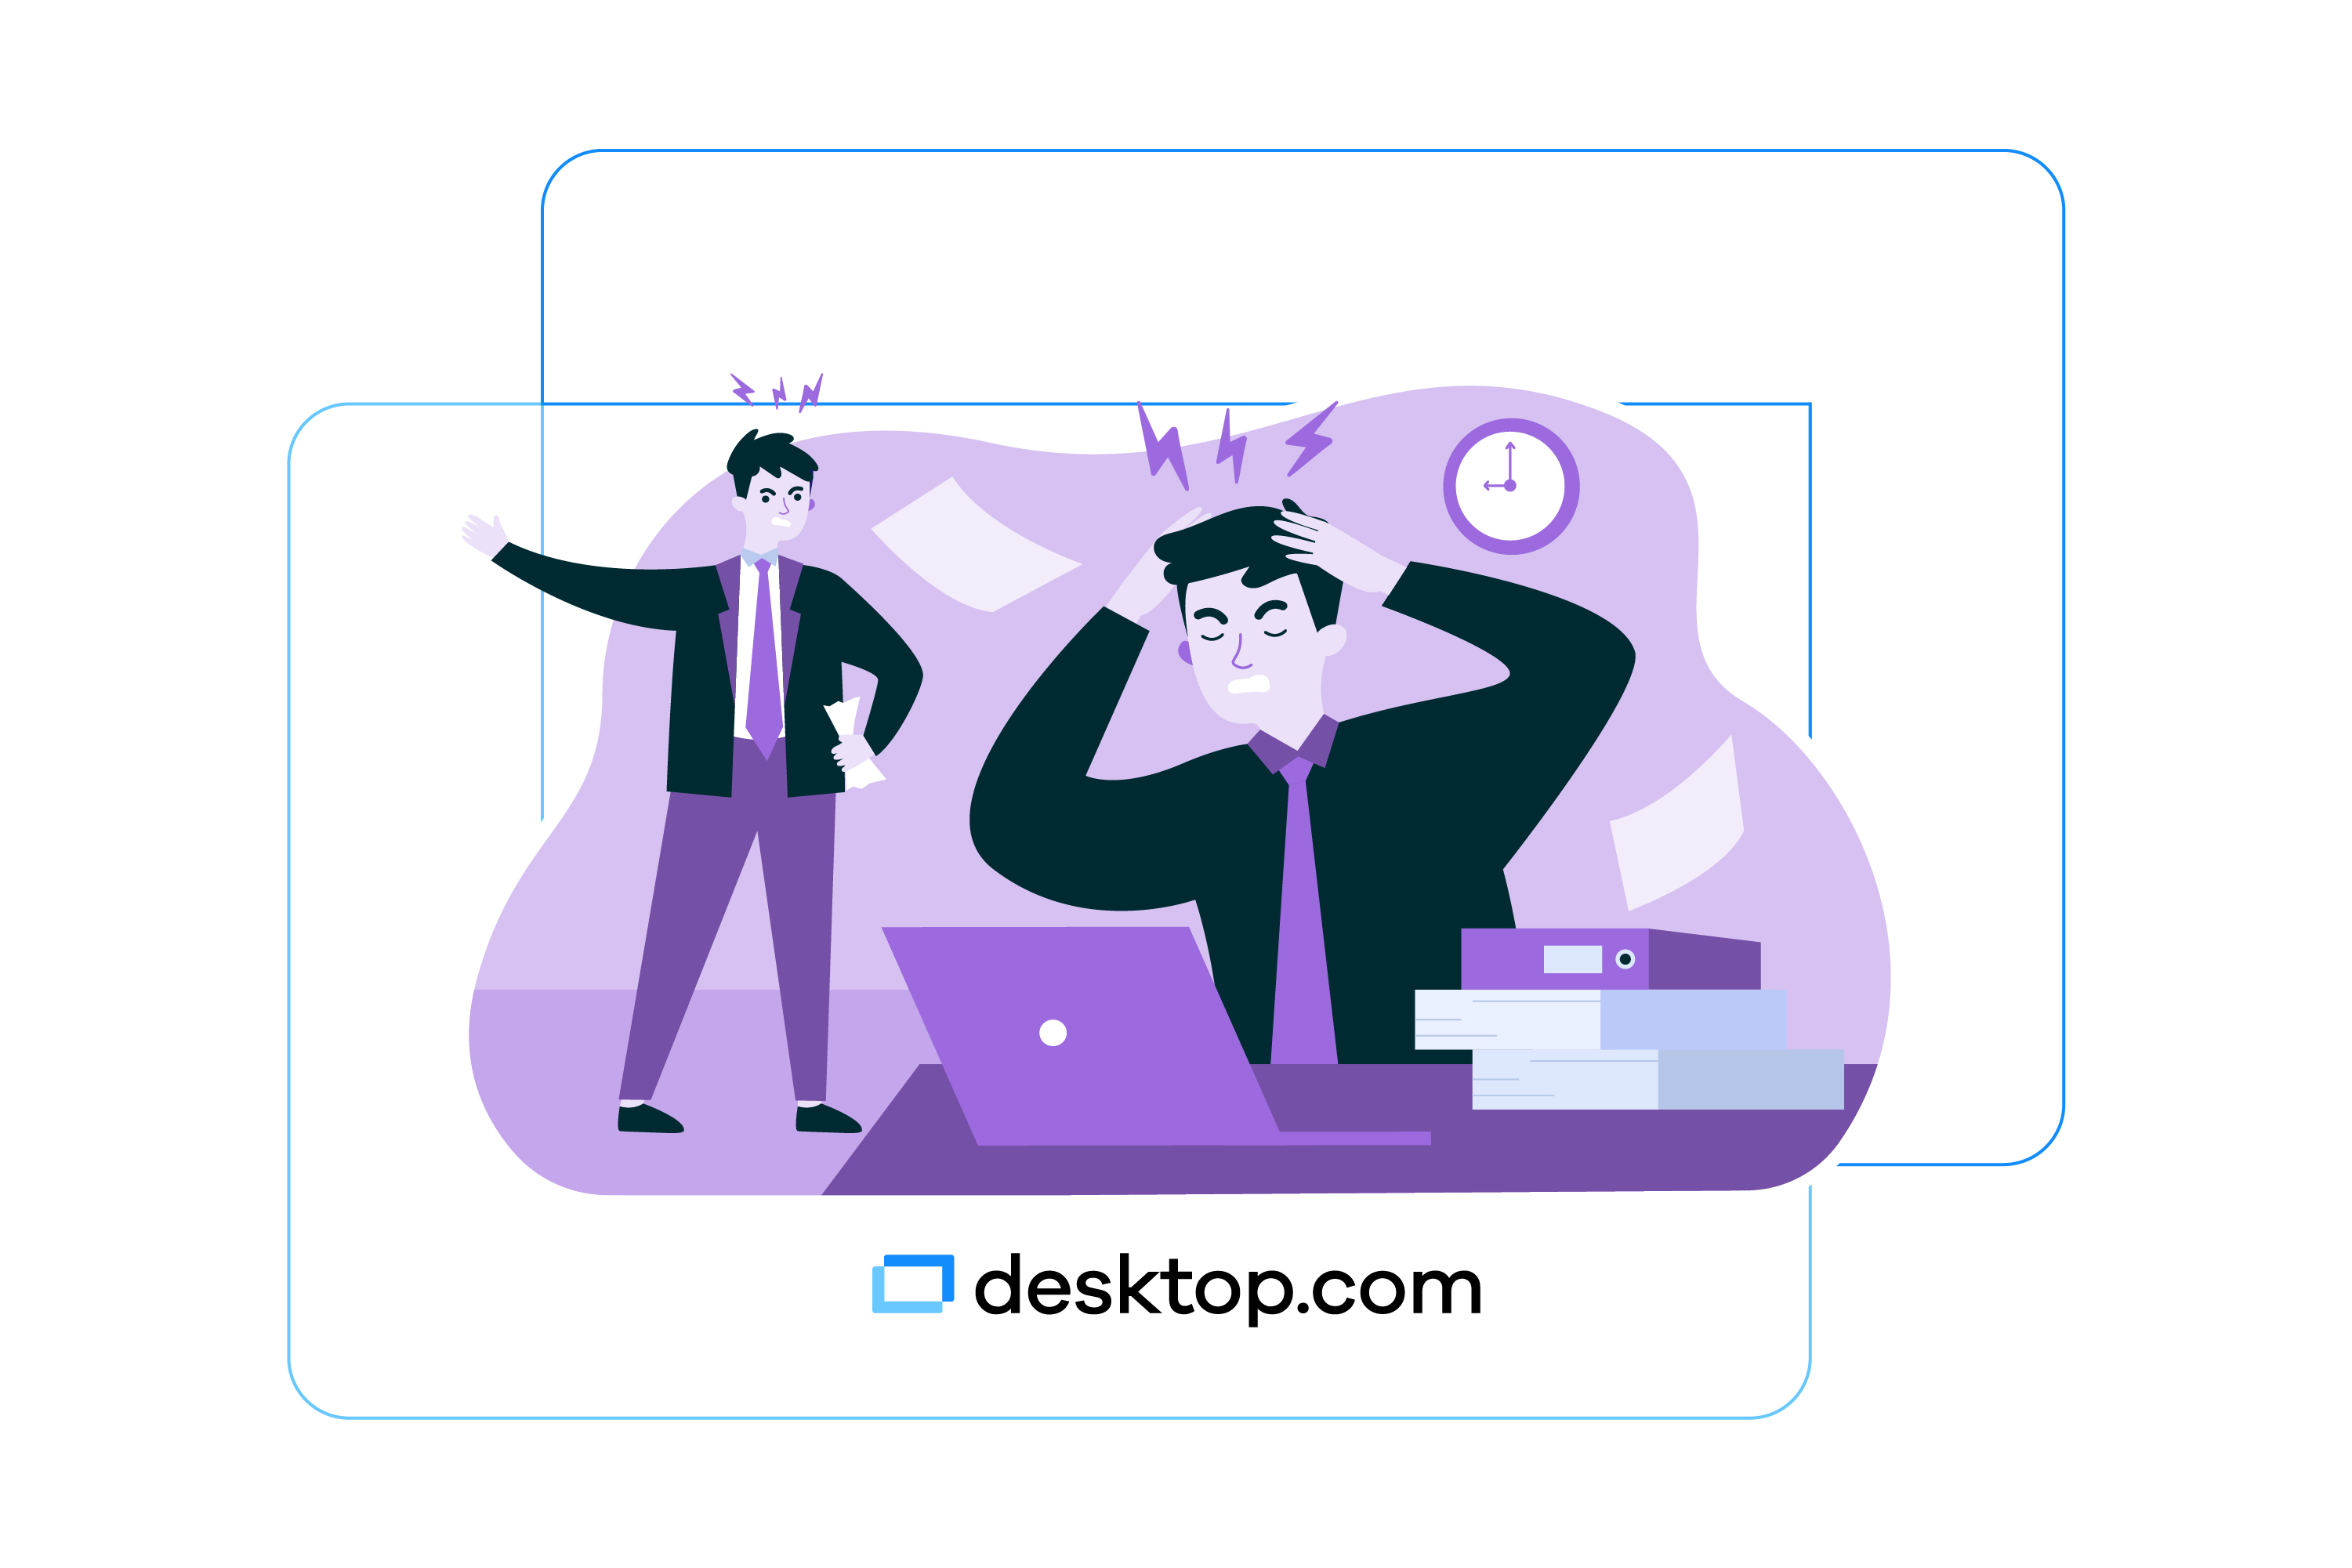 Psychological Effects of a Crowded Desktop_01